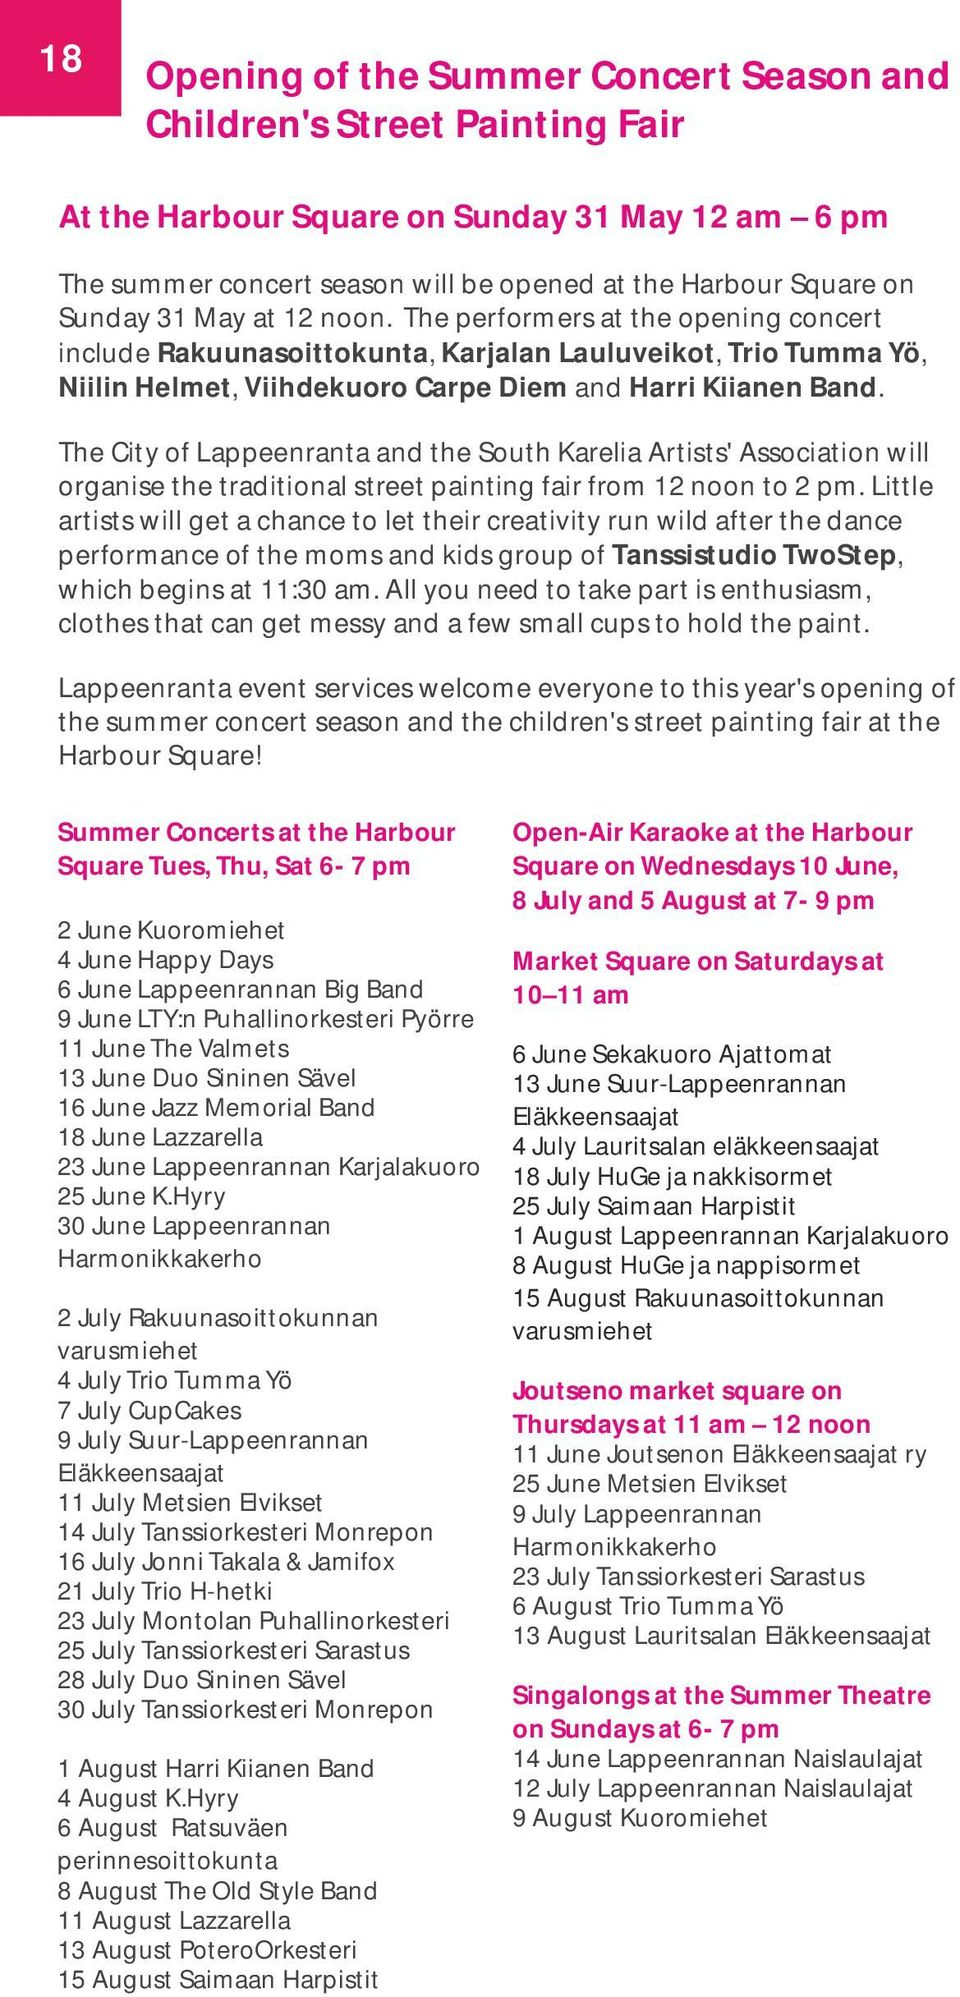 The City of Lappeenranta and the South Karelia Artists' Association will organise the traditional street painting fair from 12 noon to 2 pm.